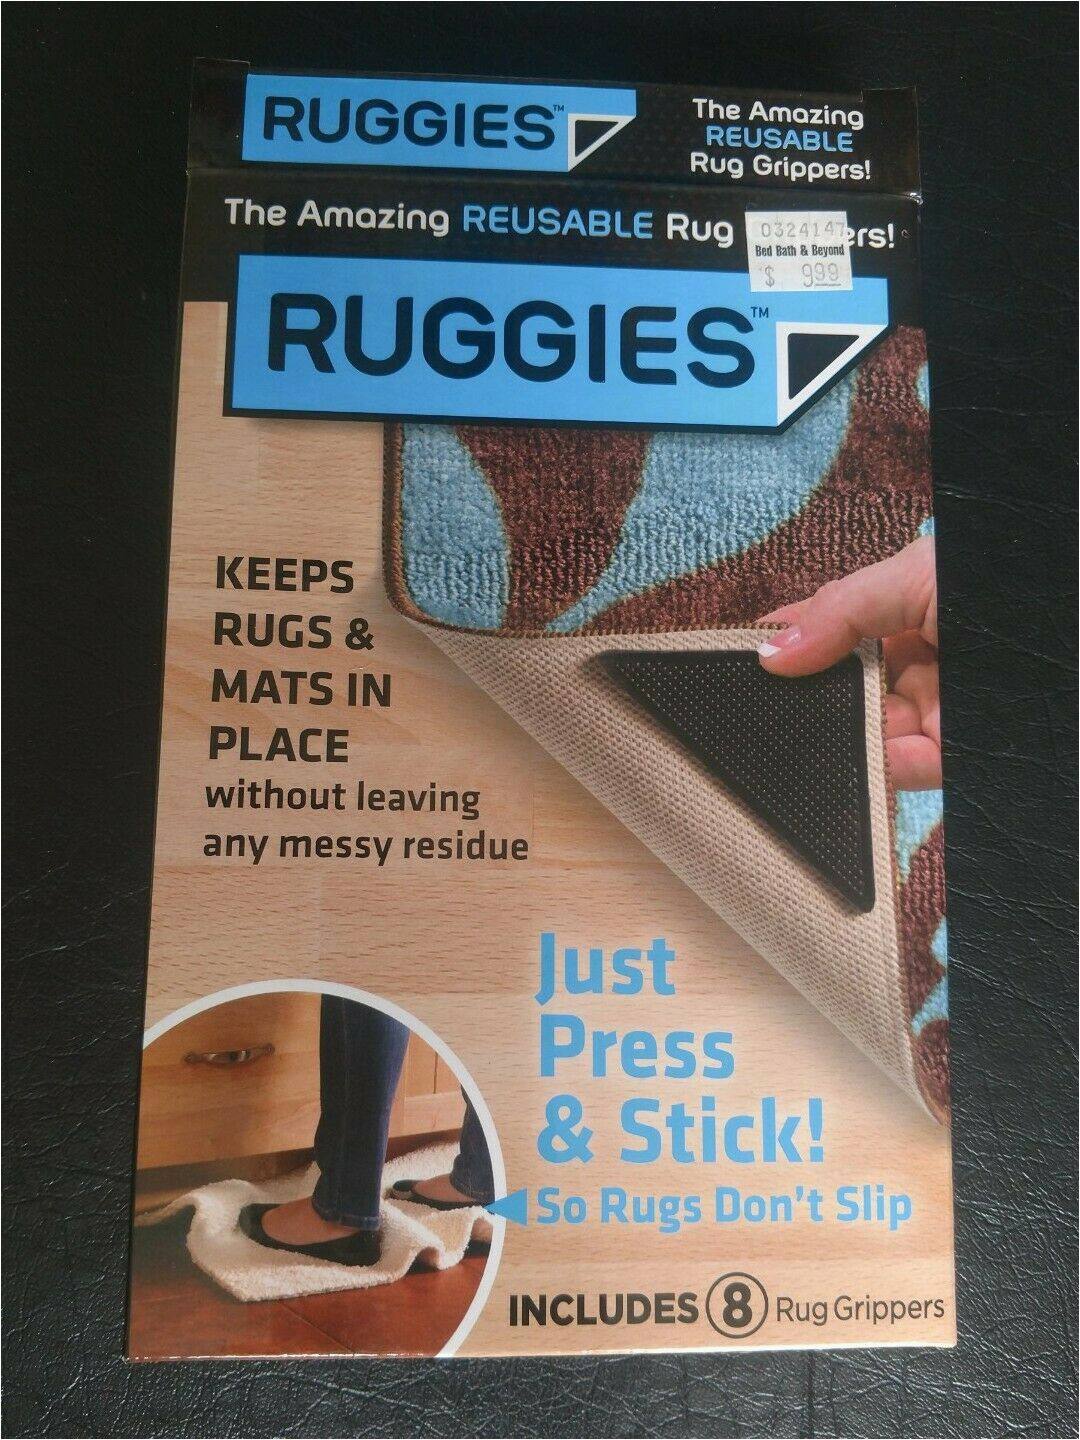 Bed Bath and Beyond Rug Gripper Rug Grip Pro Reusable Rug Gripper Set Of 8 Ruggies Carpet